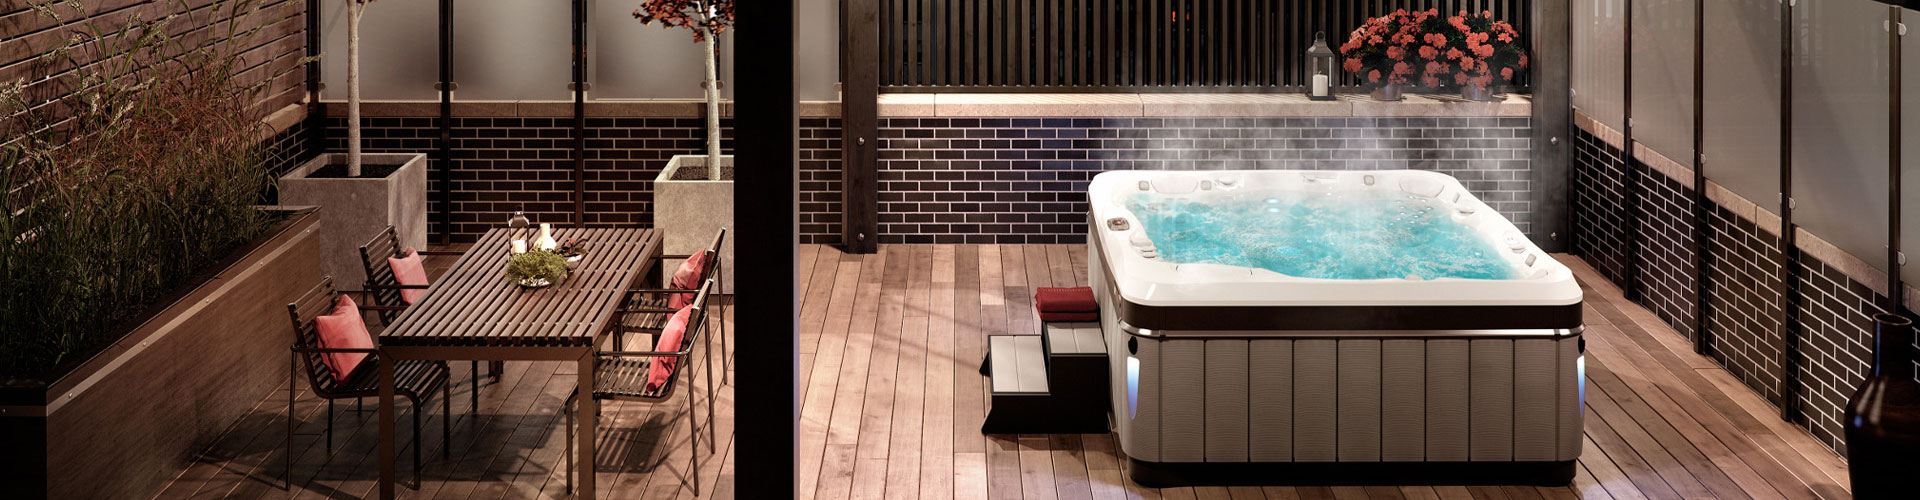 3 Best Uses for a Hot Tub at Home, Spa Dealer Steamboat Springs